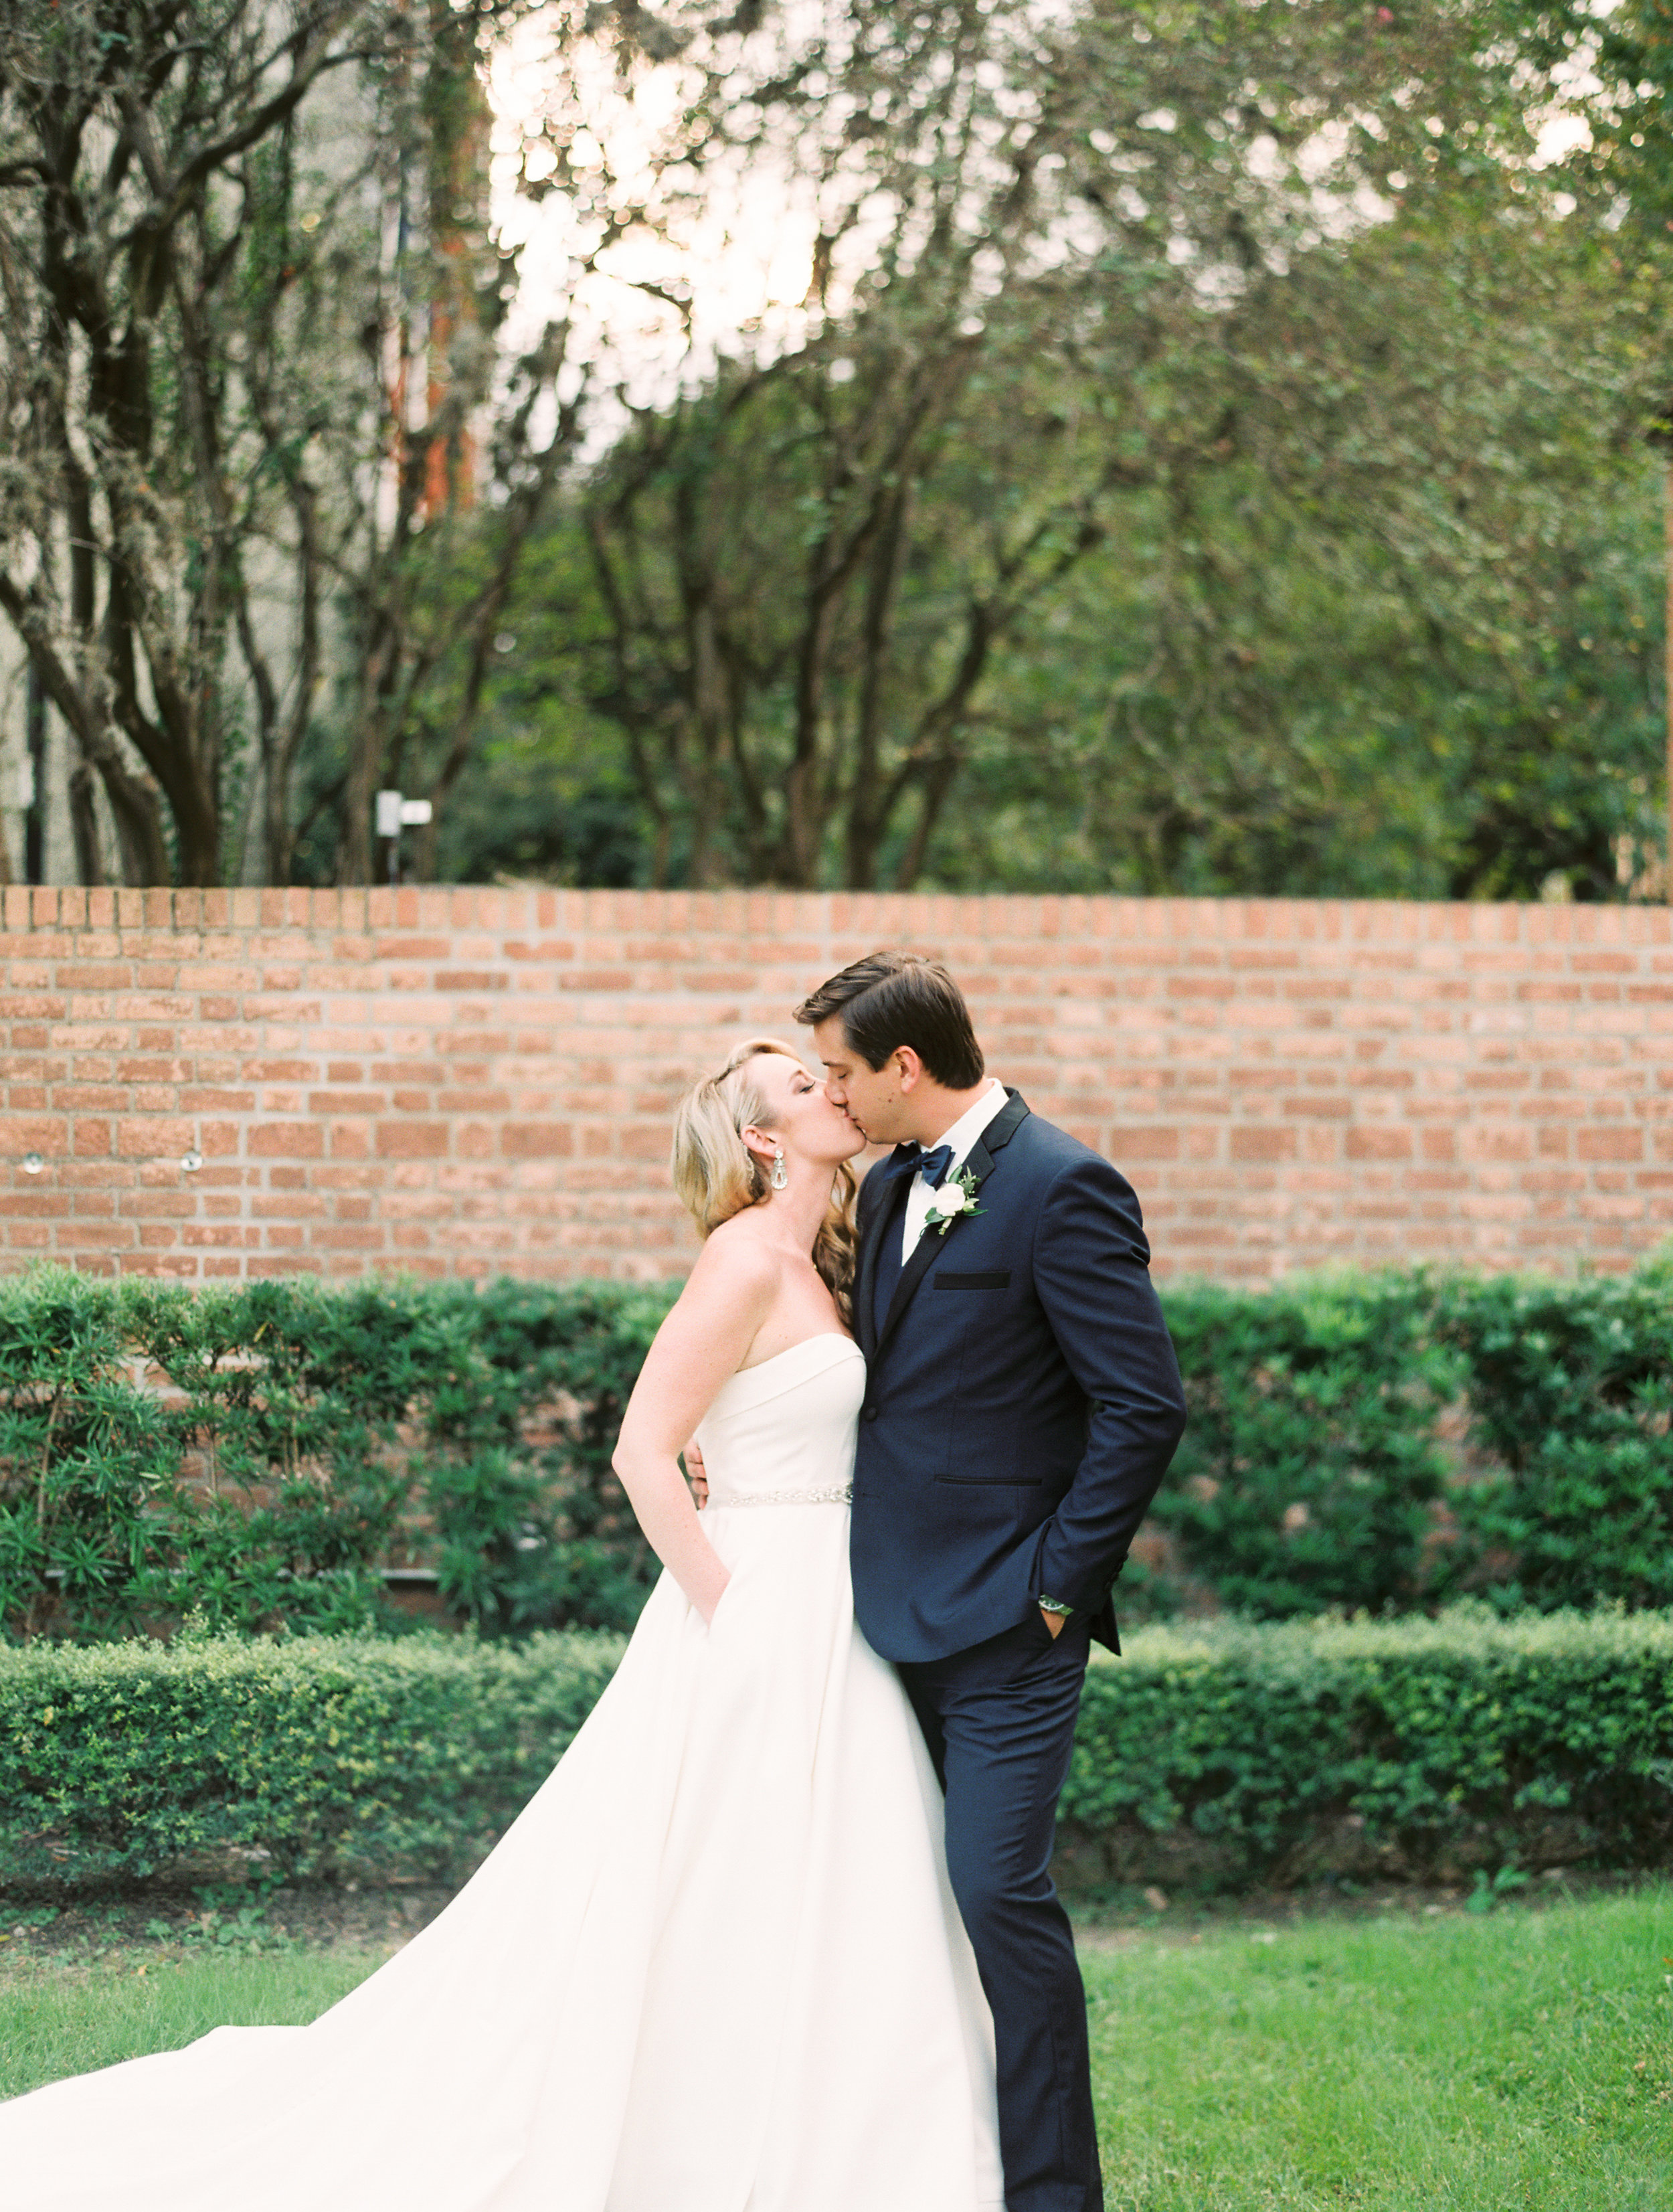 Courtney+Scott (43 of 79).jpg